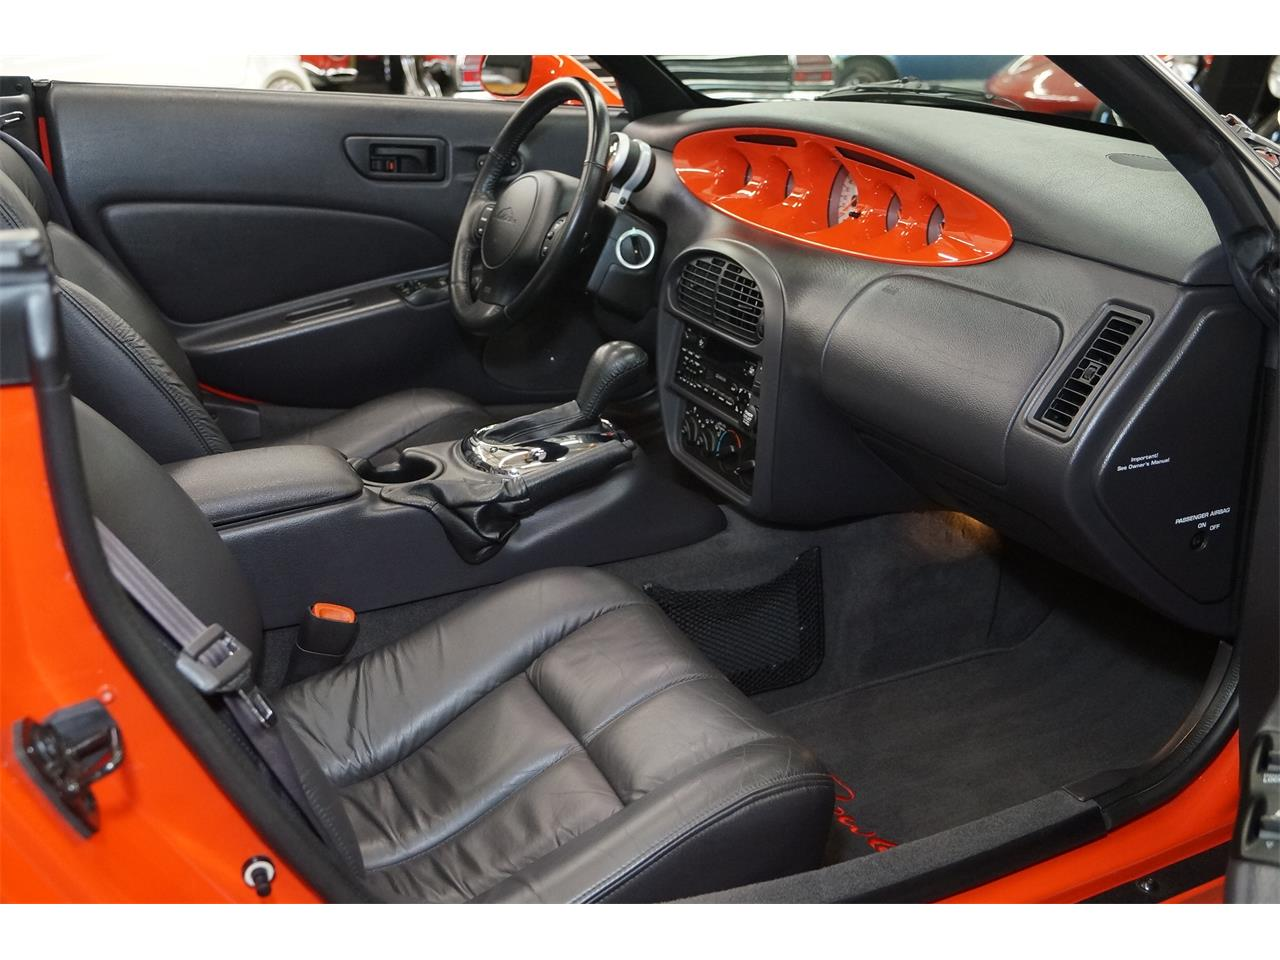 2000 Plymouth Prowler for sale in Thousand Oaks, CA – photo 11